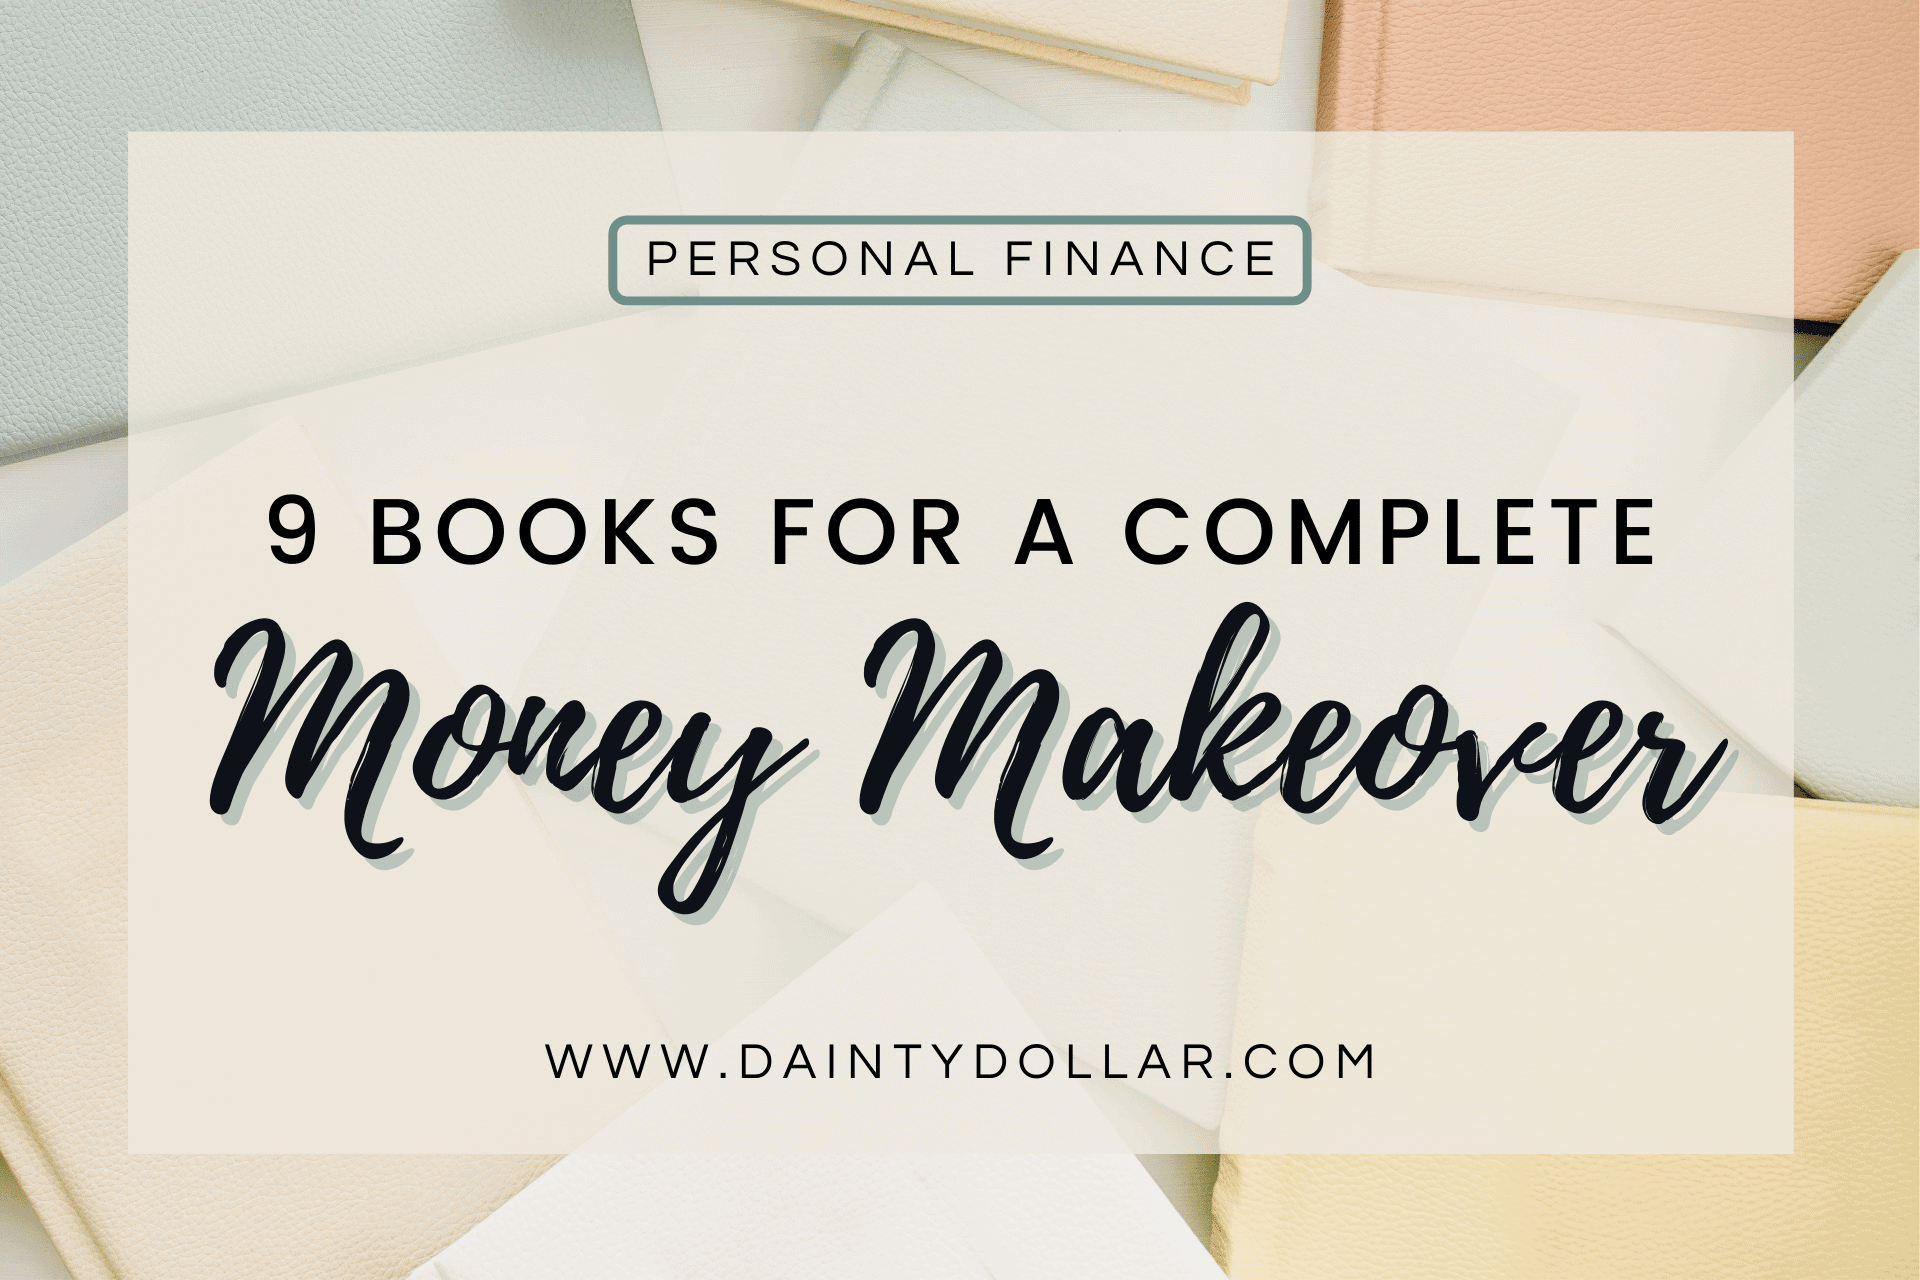 Dainty Dollar - 9 Books That Will Give you a Complete Money Makeover-min